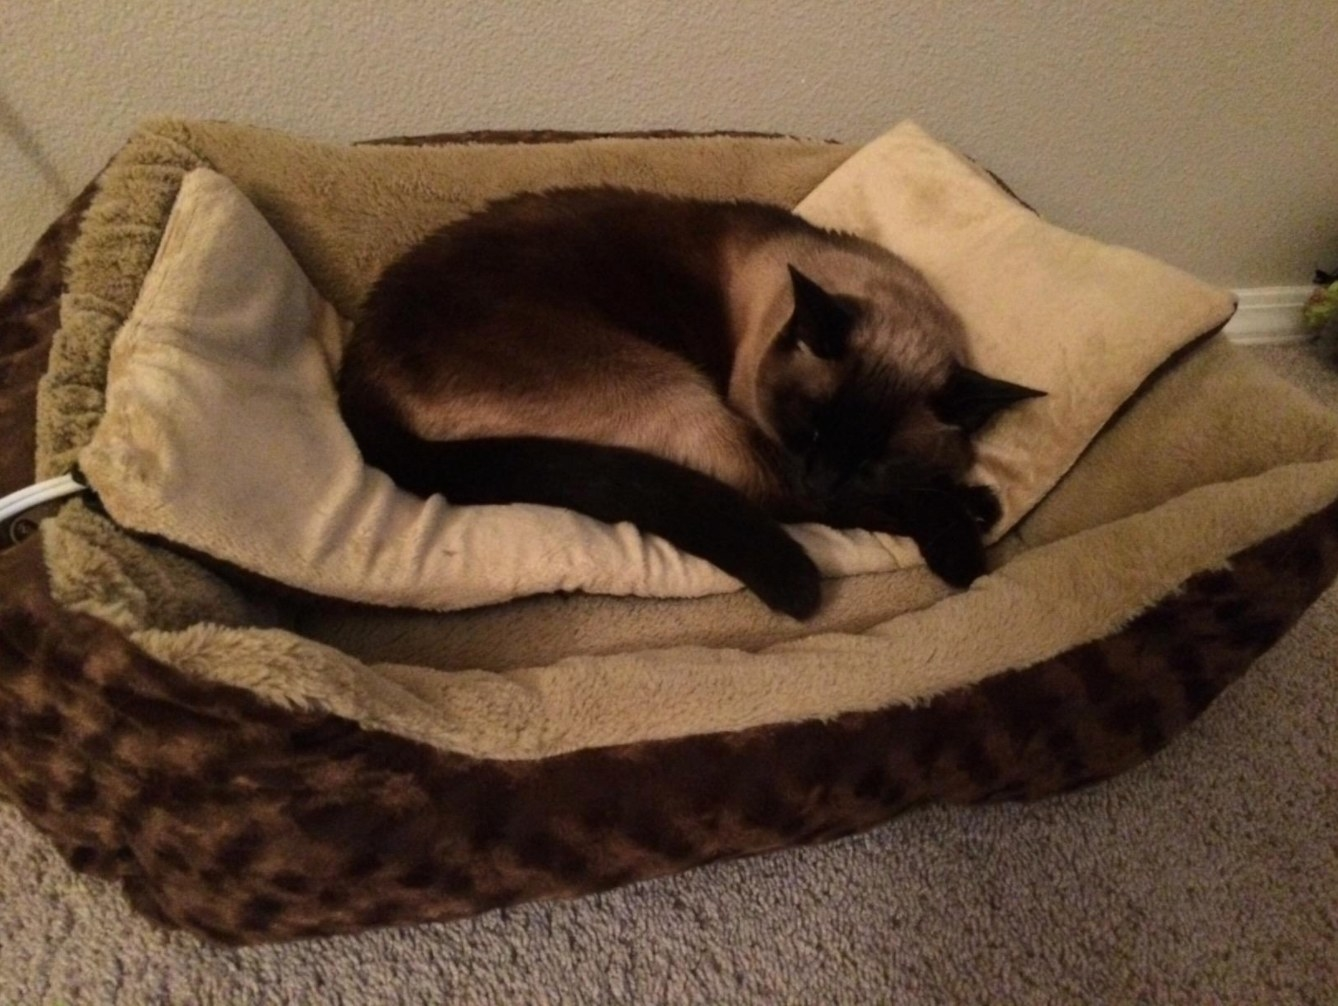 A reviewer's image of their cat on the heated bed